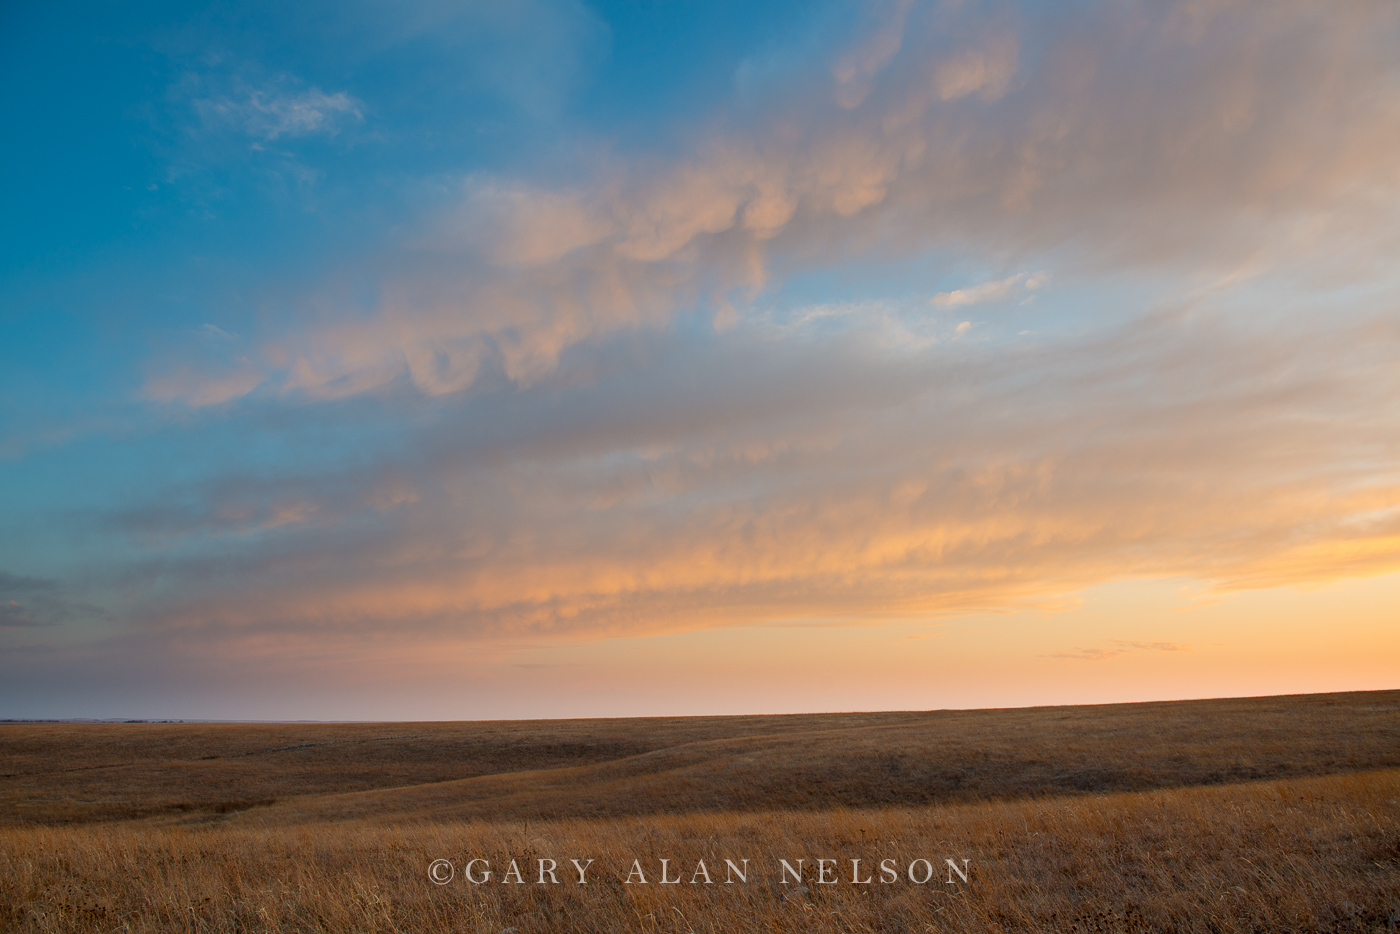 tallgrass prairie, flint hills, kansas, clouds, dusk, photo